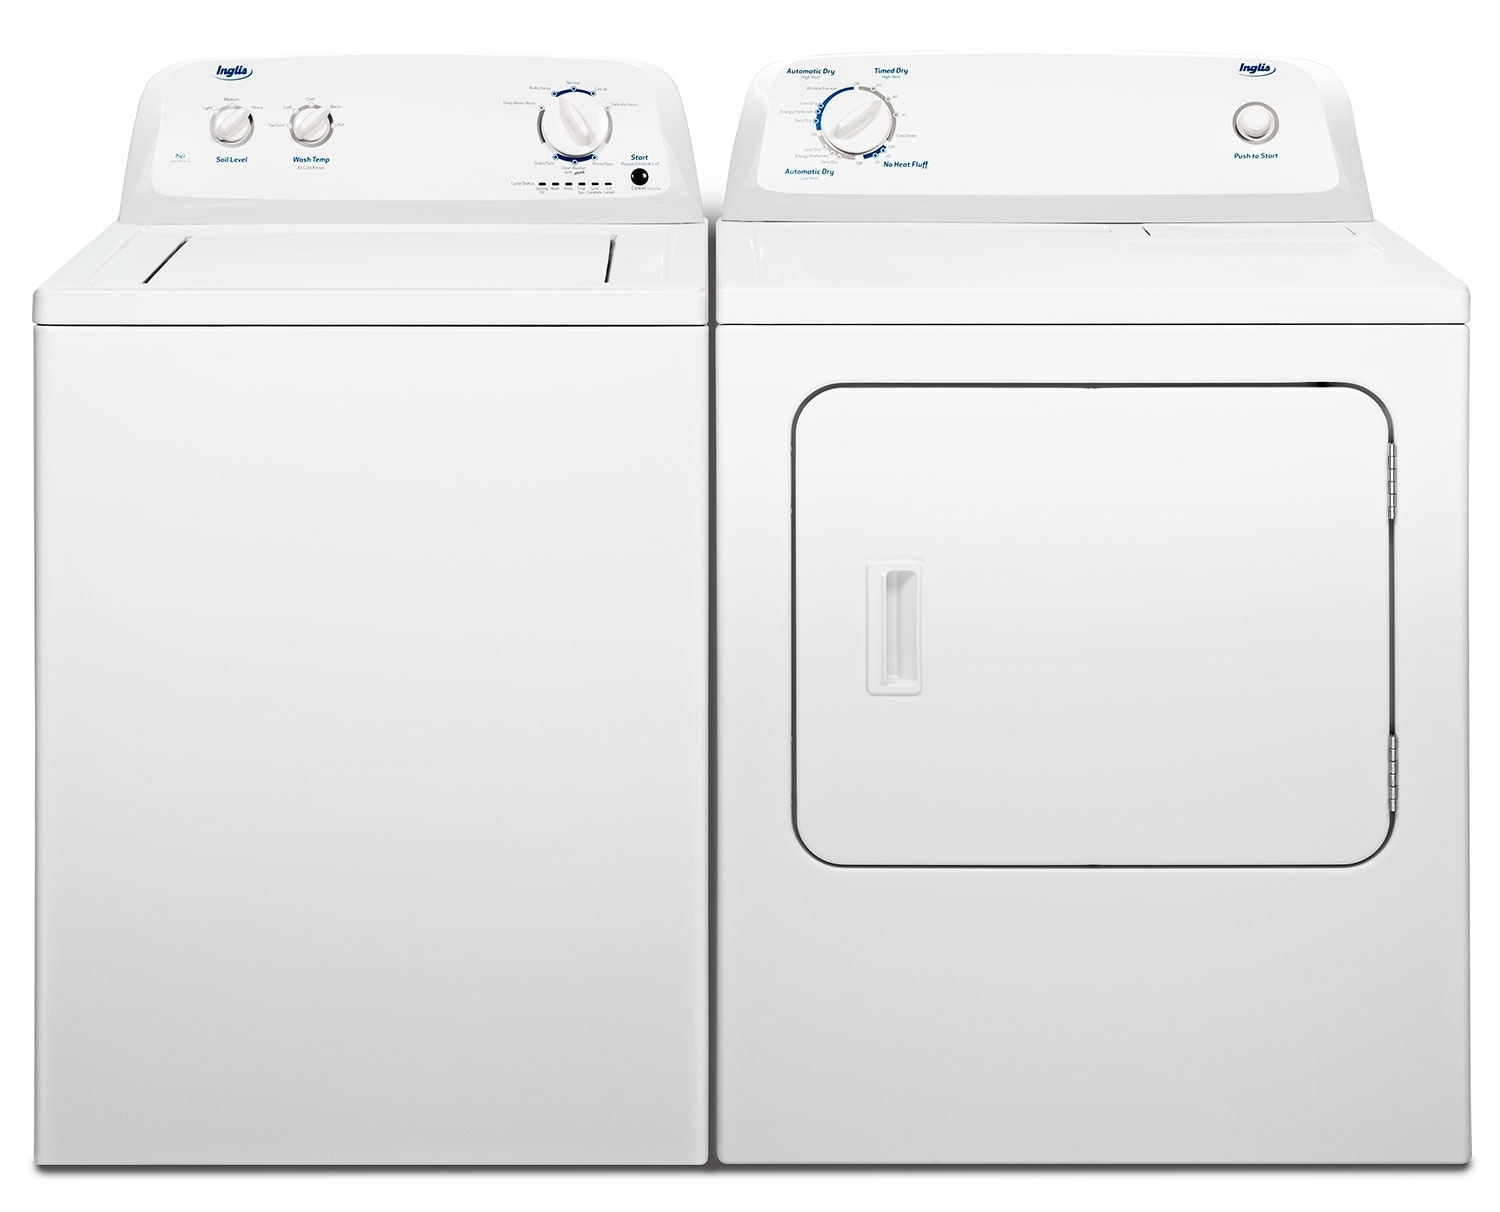 Washers and Dryers - Inglis 4.1 Cu. Ft. Top-Load Washer and 6.5 Cu. Ft. Electric Dryer - White